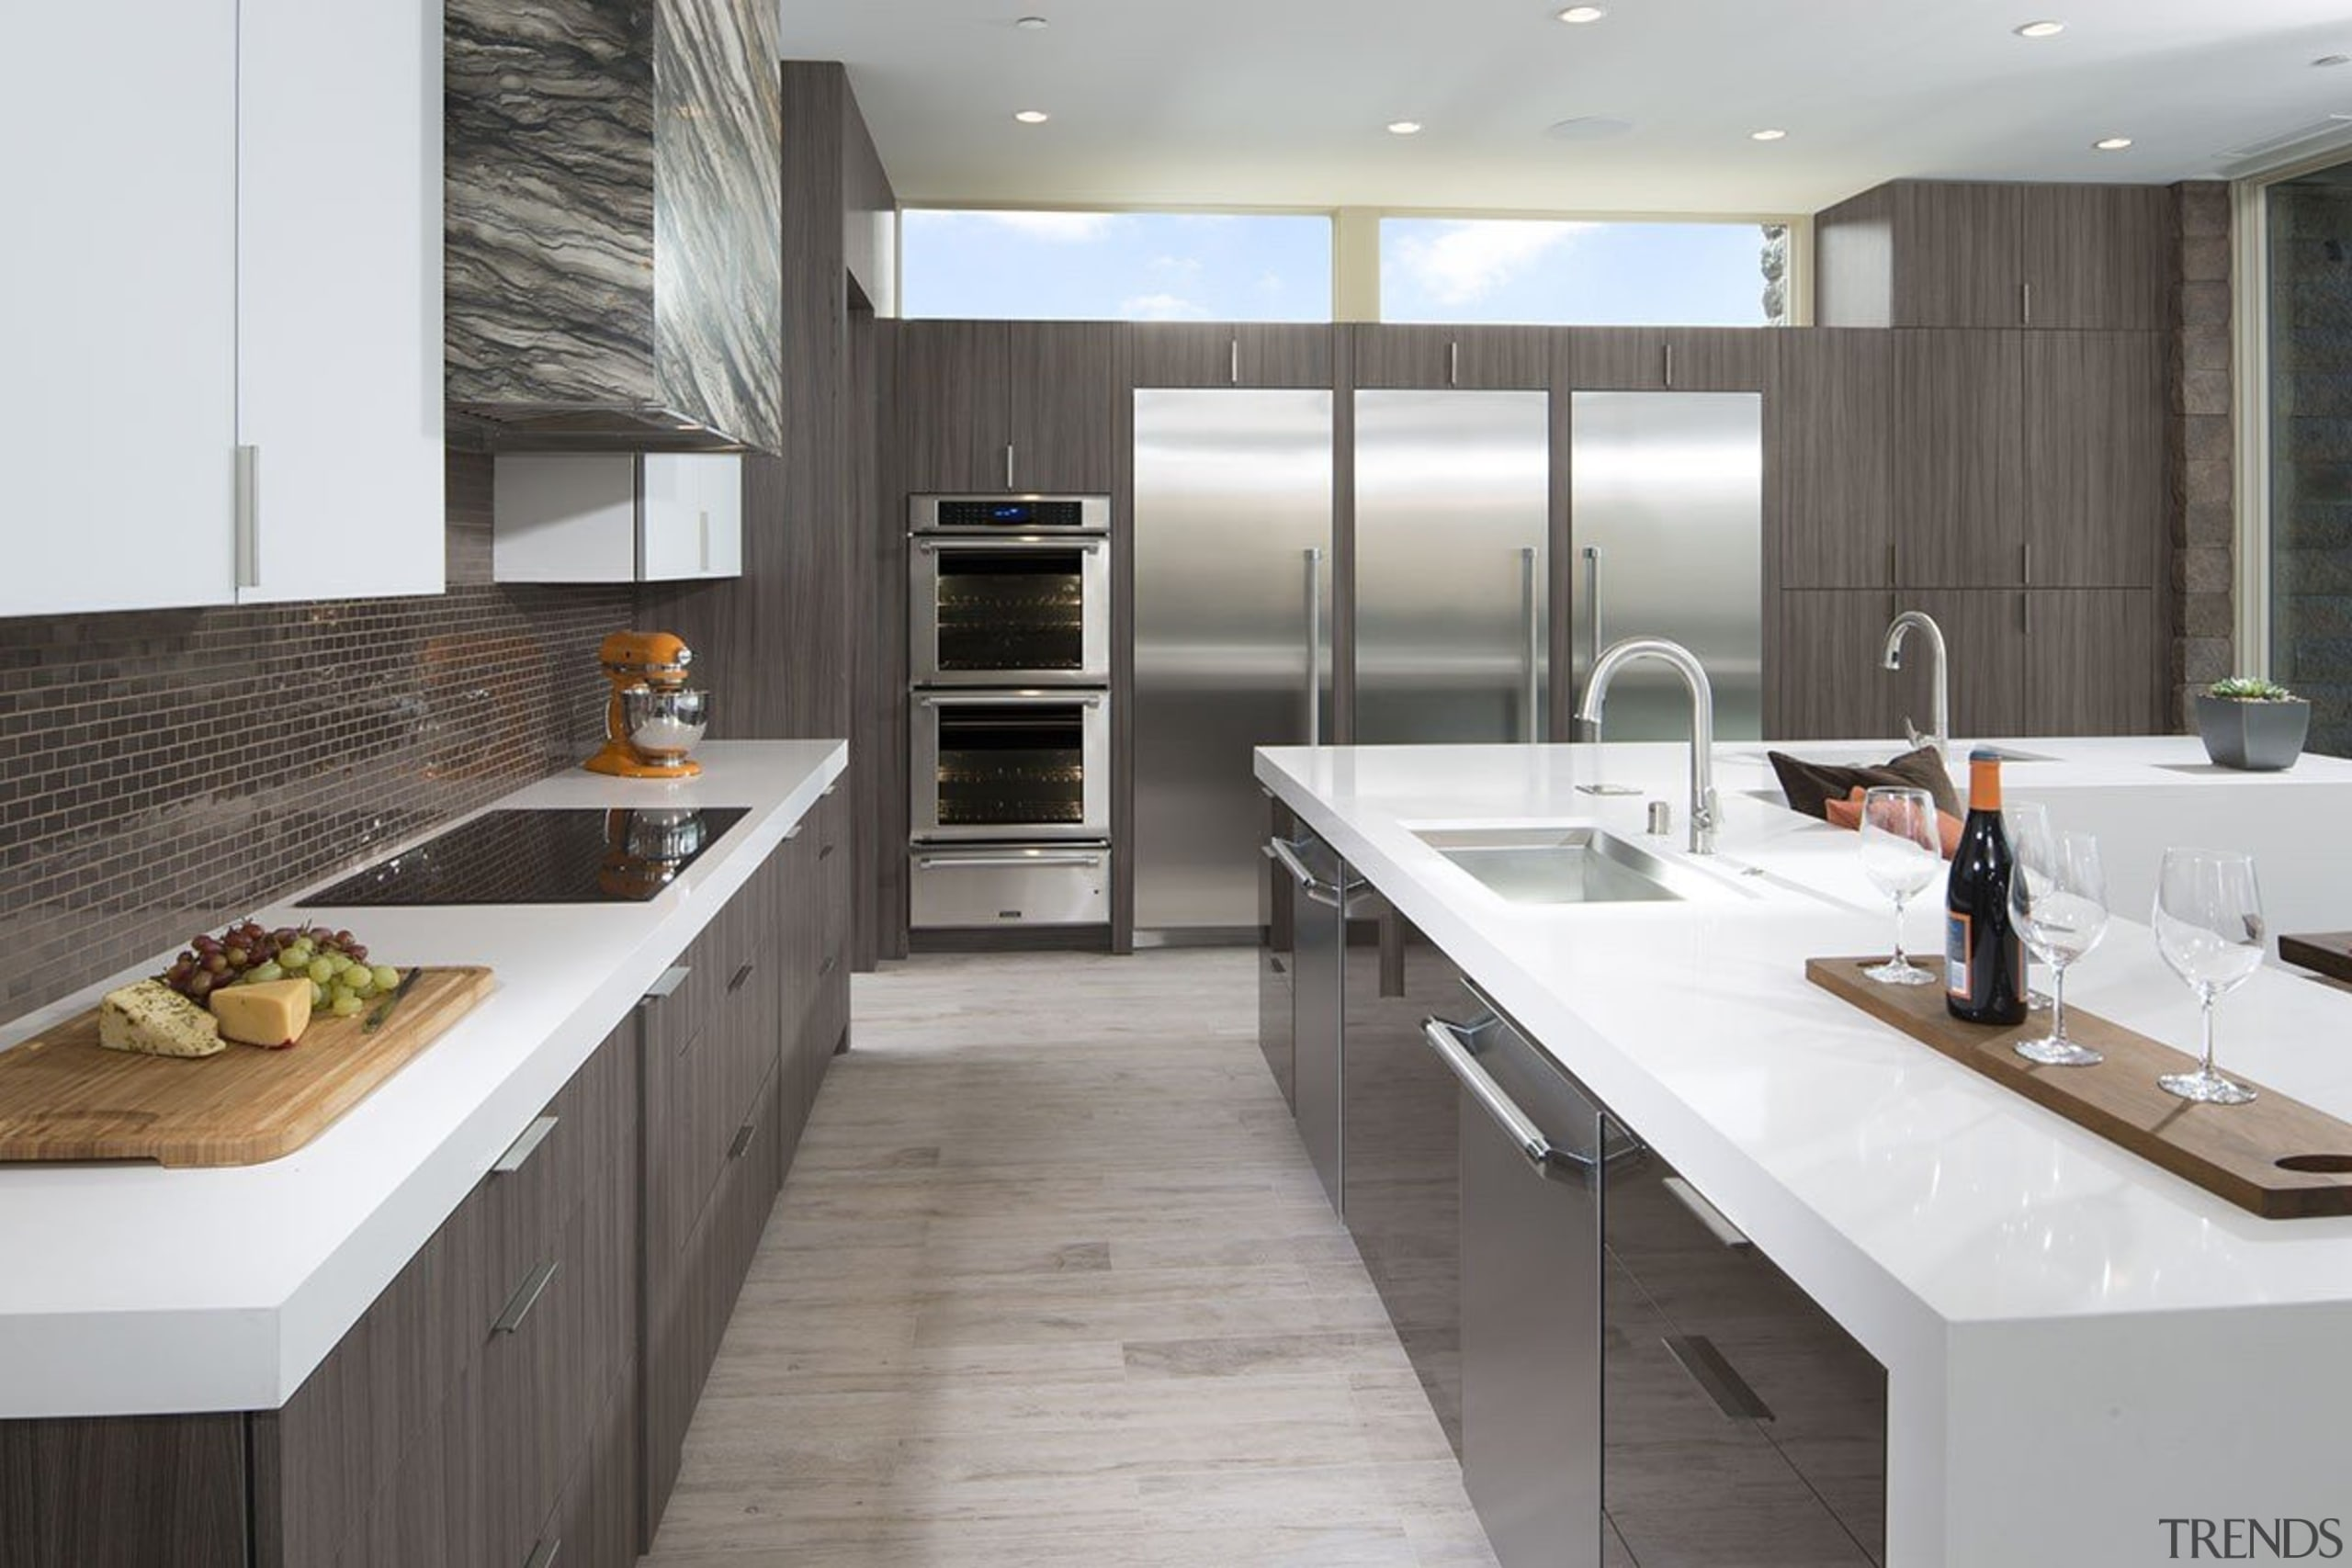 By Design Studio, CaliforniaSee more from By cabinetry, countertop, cuisine classique, interior design, kitchen, gray, white